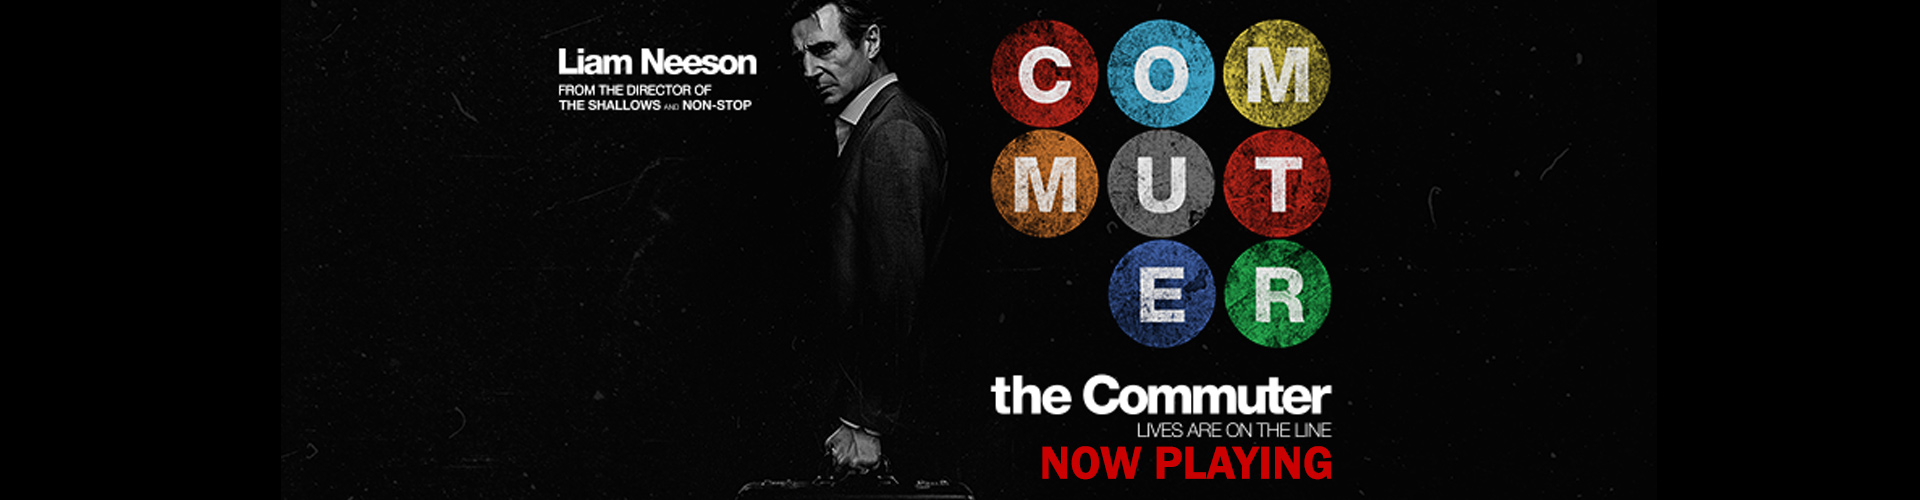 commuter-now-playing